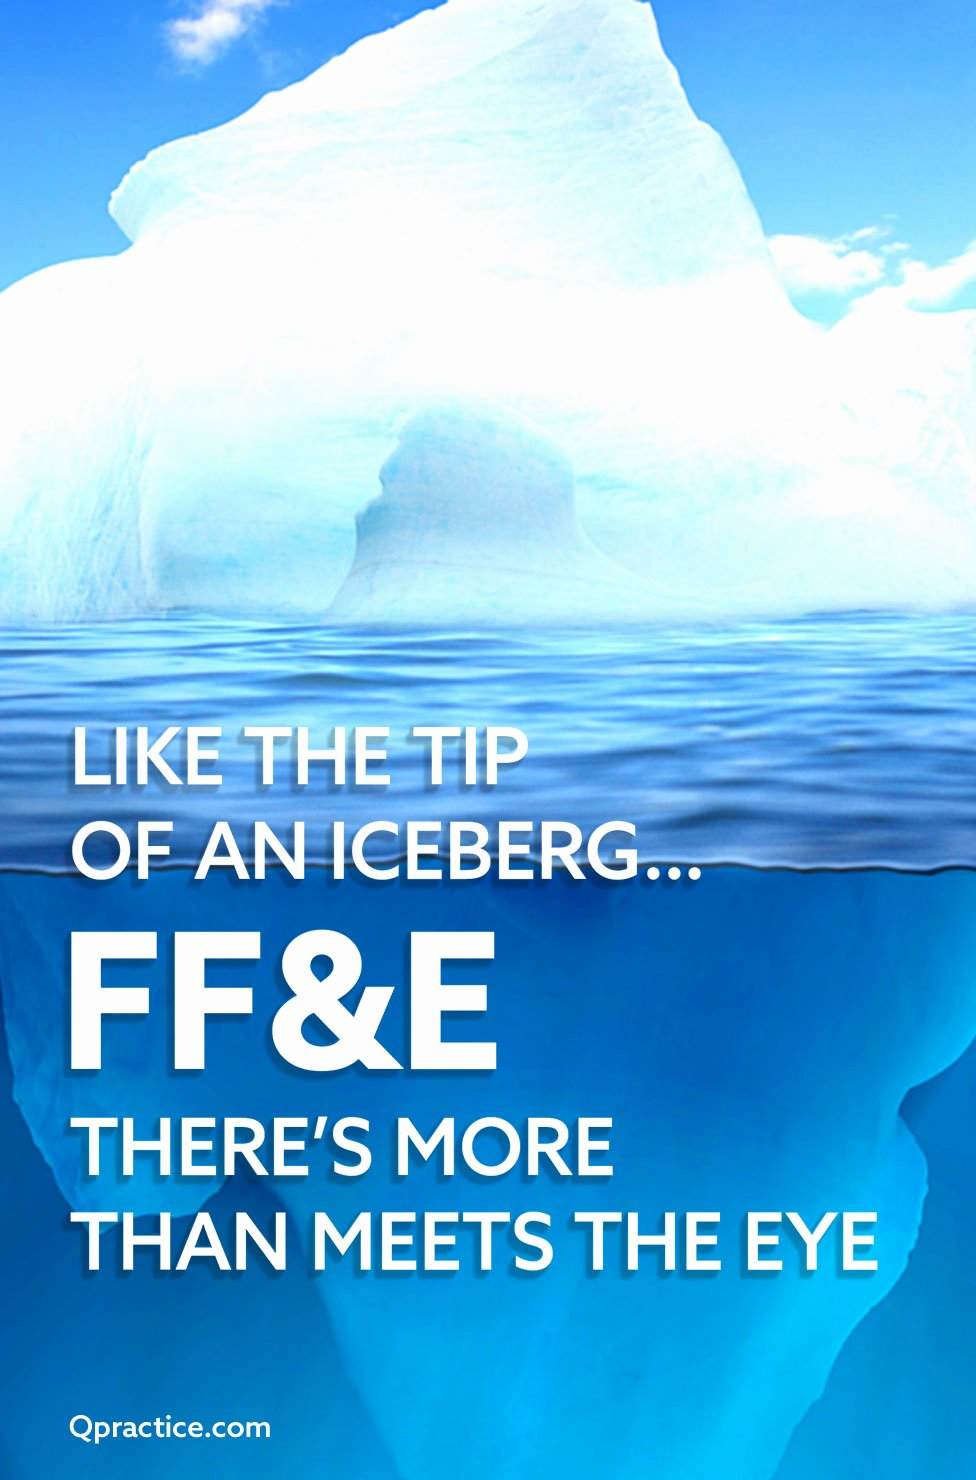 Ff and E Schedule Elegant Ff&e Specifications the Tip Of the Iceberg • Qpractice